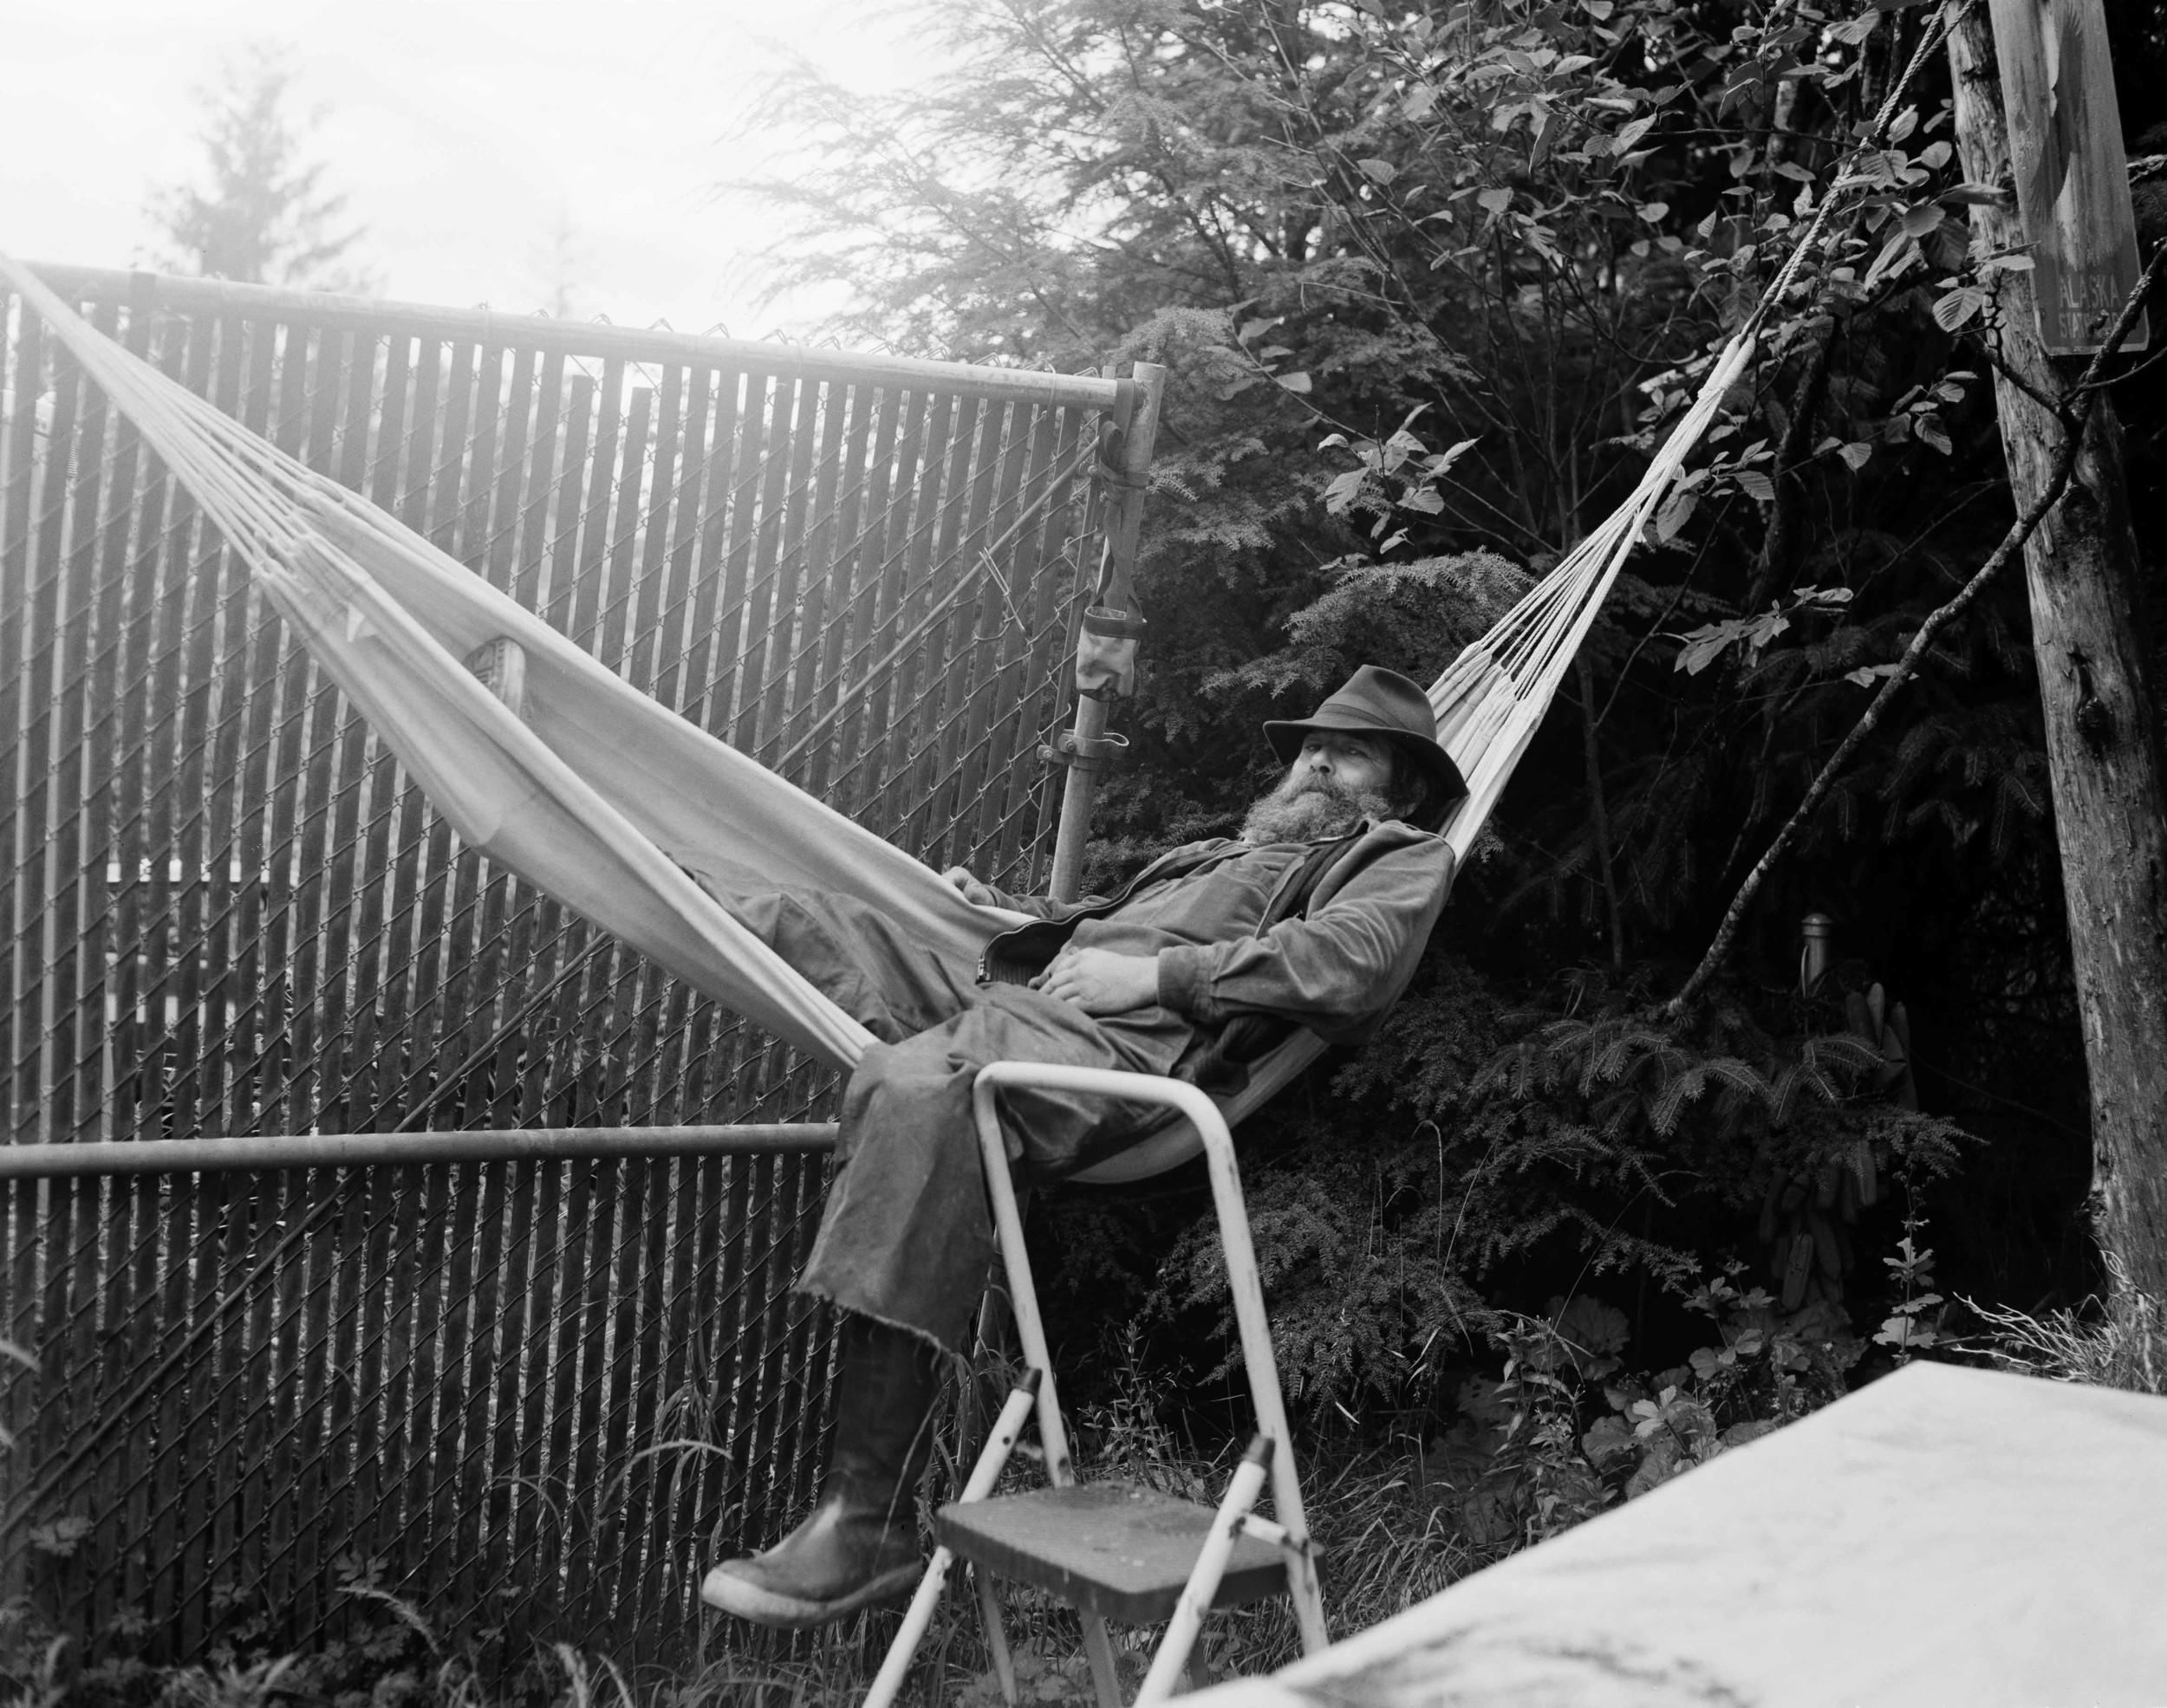 Hammock Chair Rona Photos From The Next Generation Of Female Photographers Vice